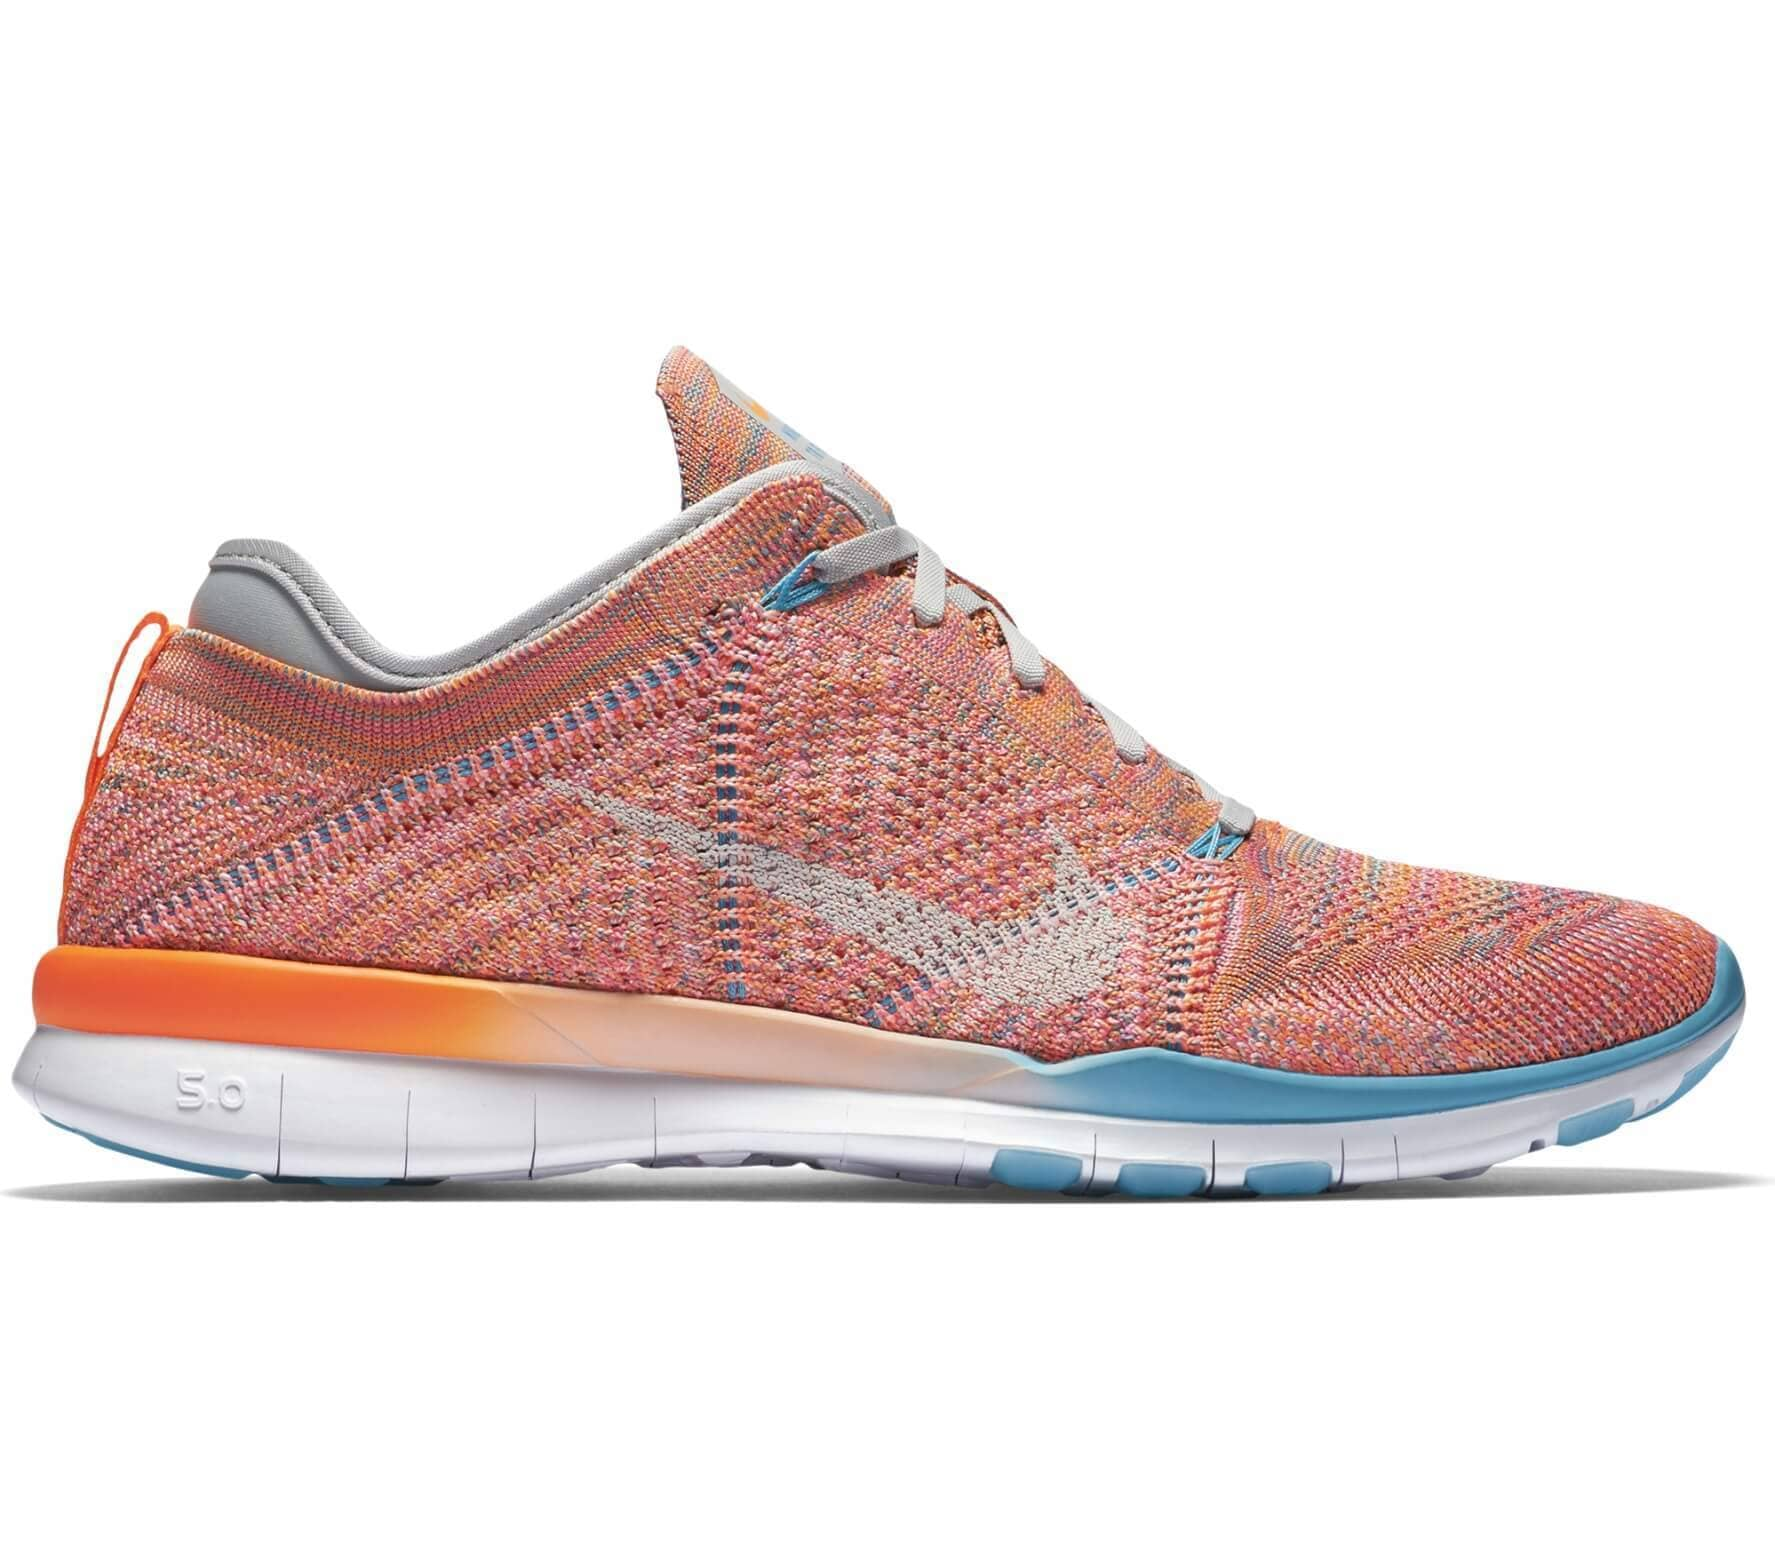 buy online d5ed0 7f4b7 Nike - Free TR Flyknit women s training shoes (orange white)